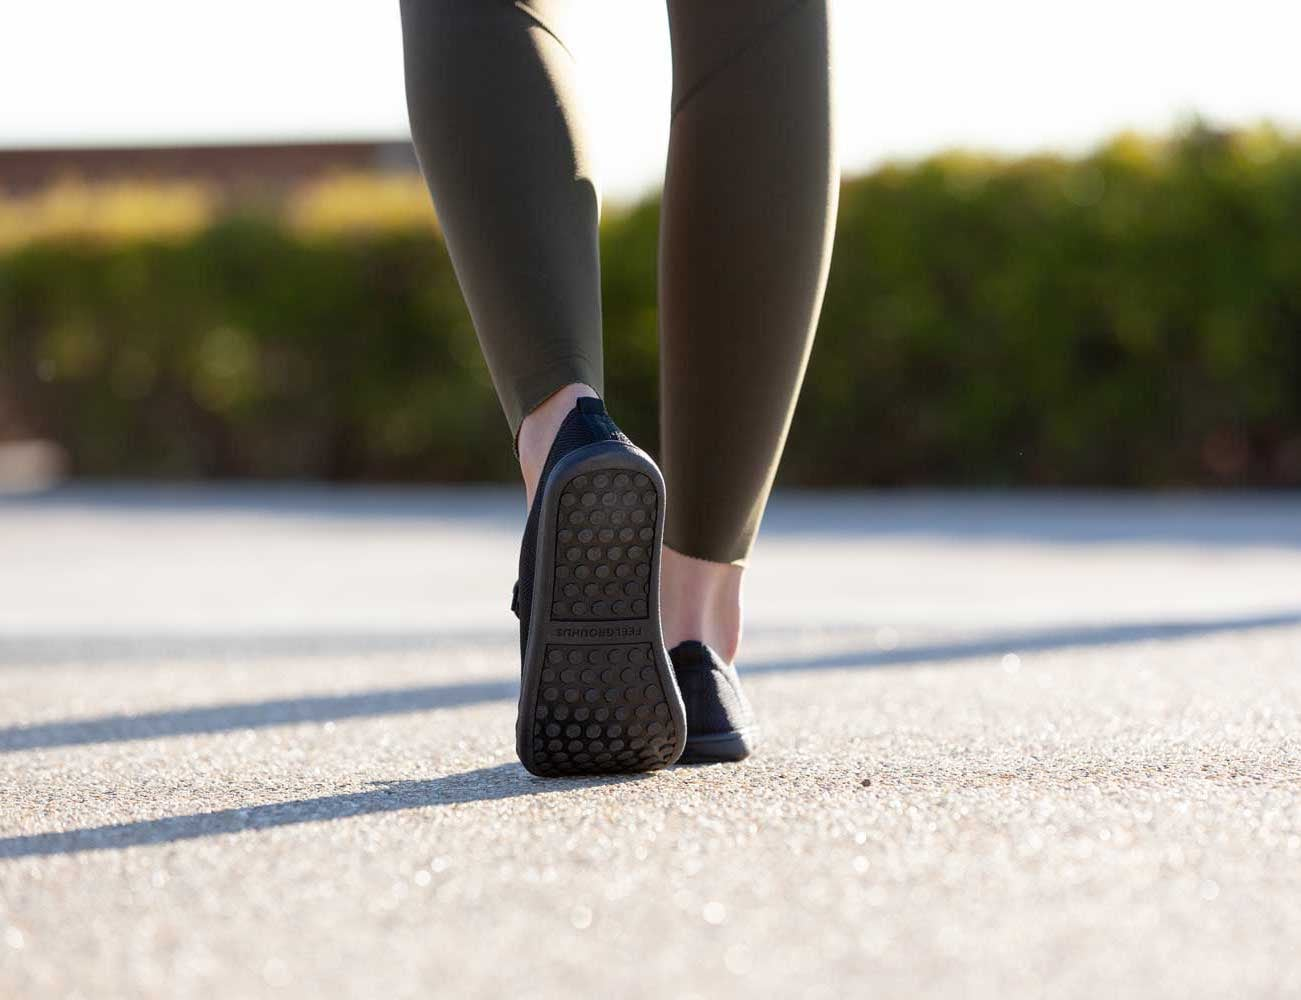 Feelgrounds Minimalist Barefoot Shoes help your feet feel their best